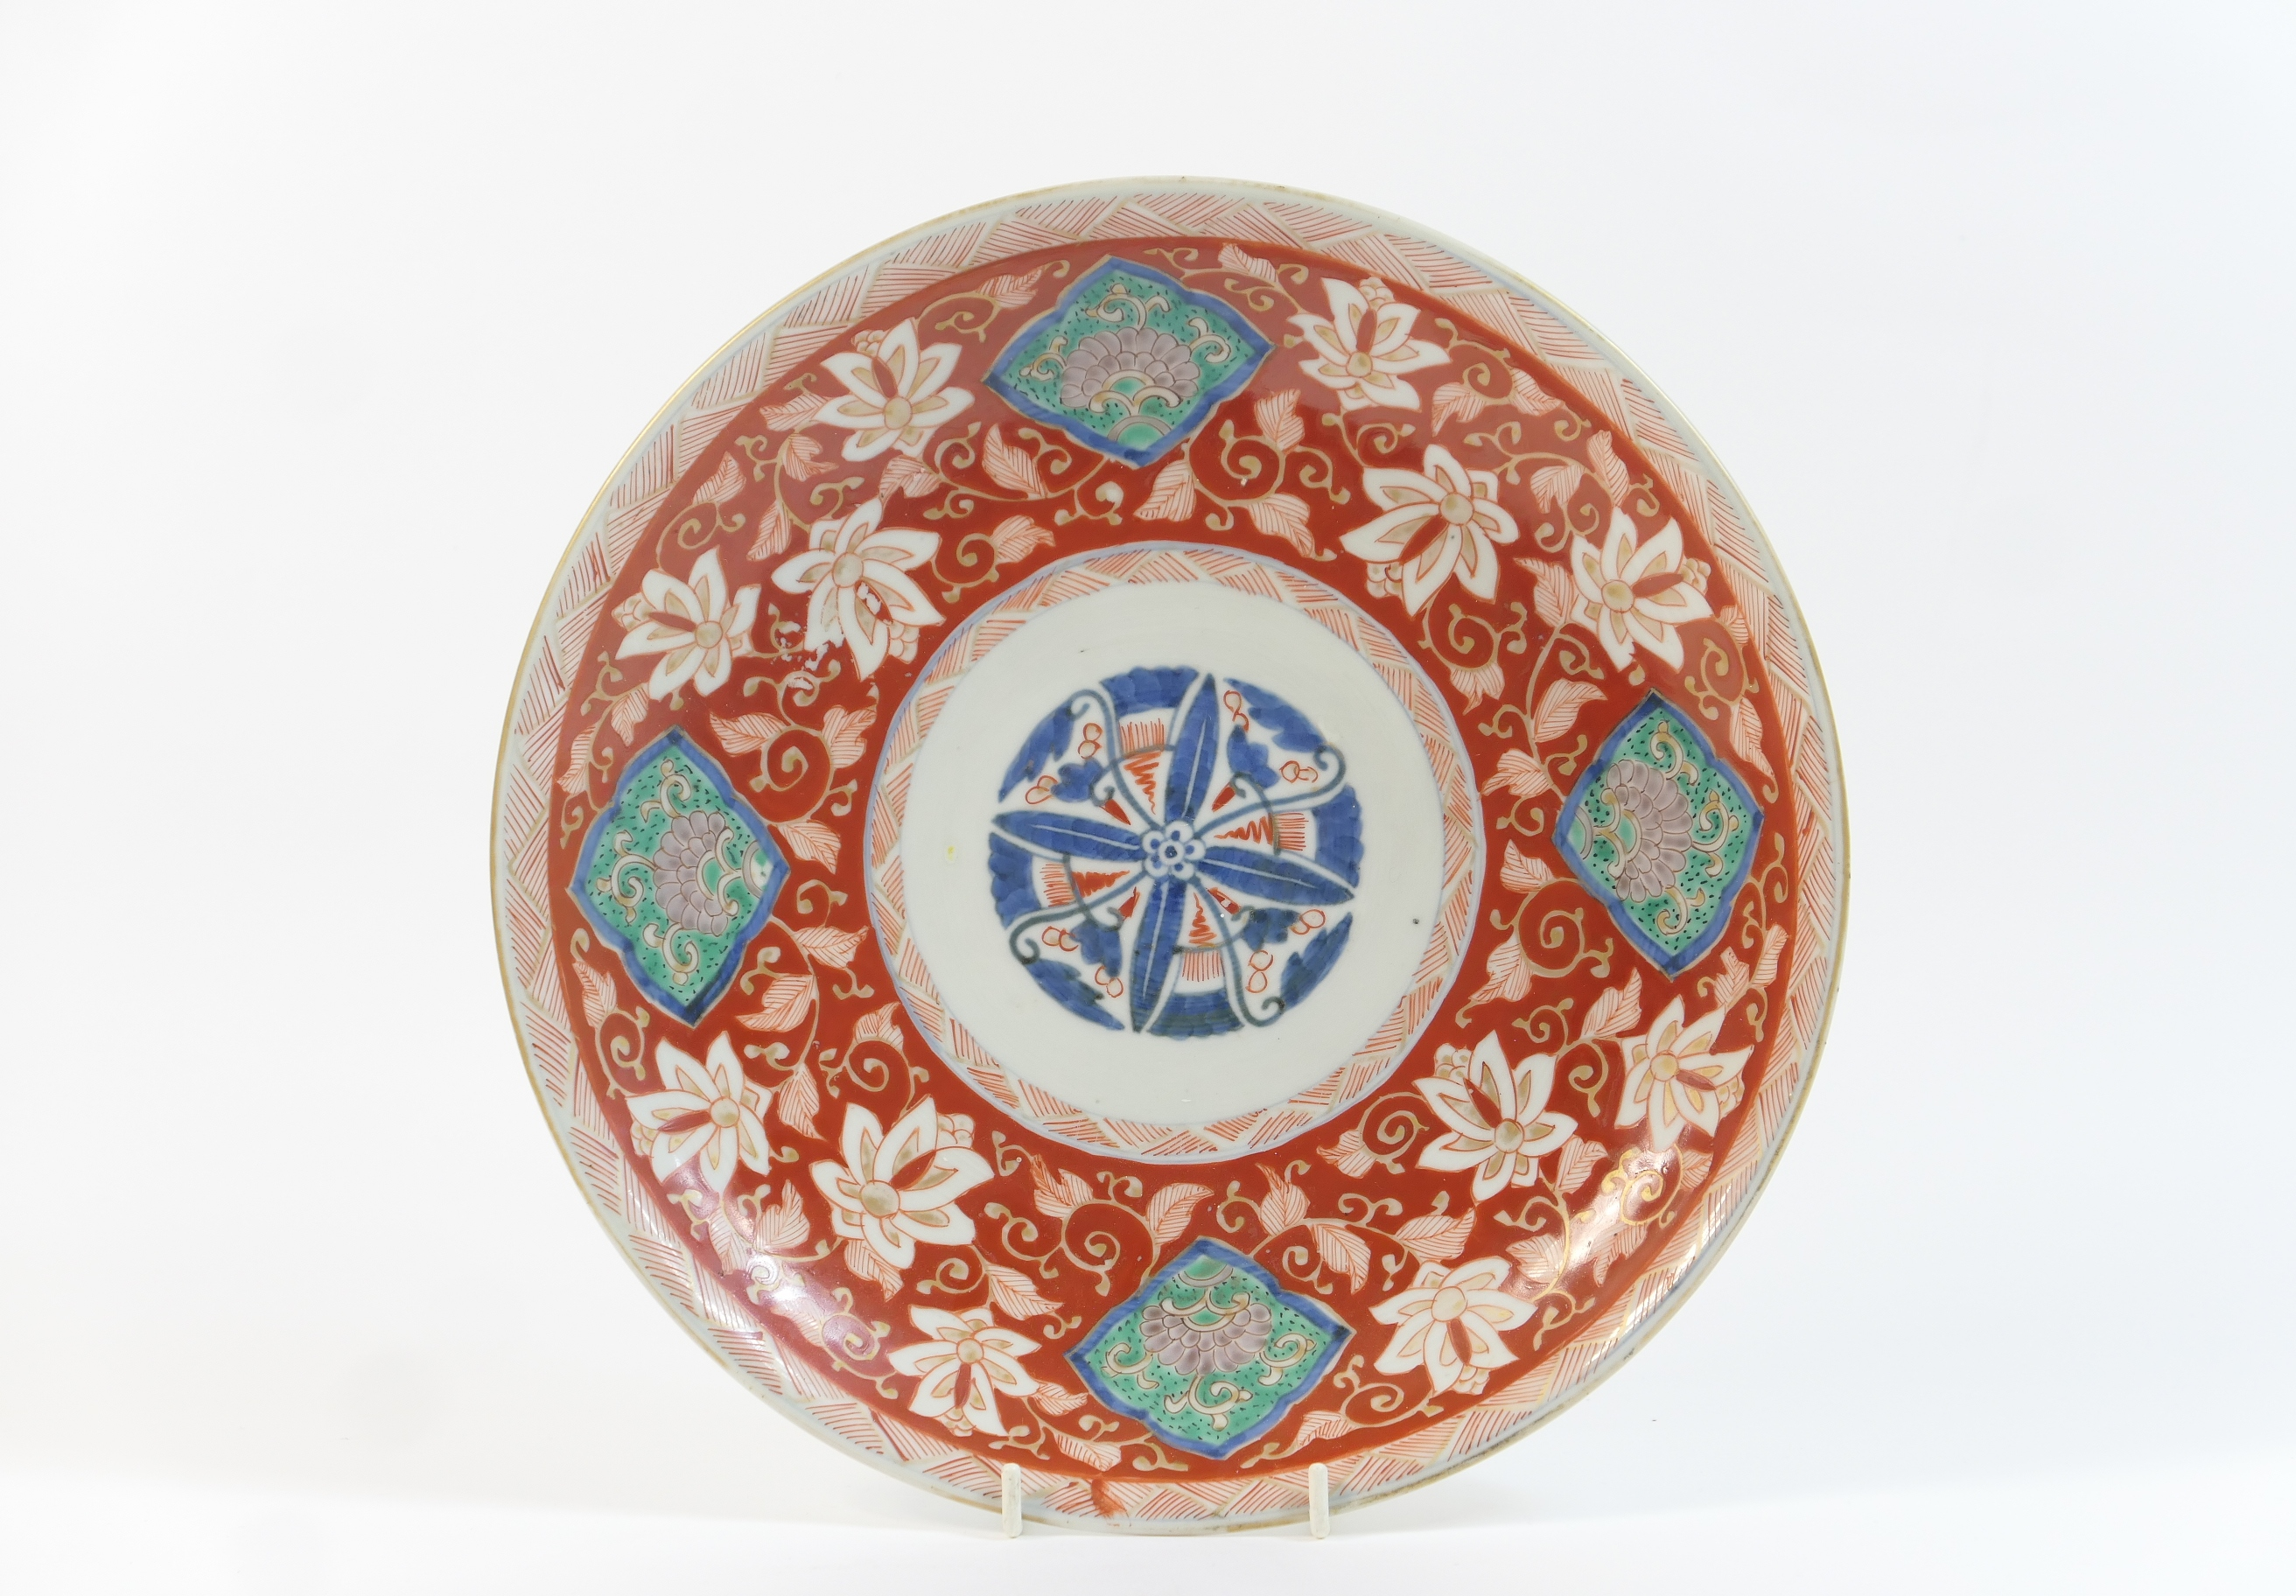 Lot 55 - Japanese Arita porcelain plate, Meiji (1868-1912), decorated with a central lotus flower in